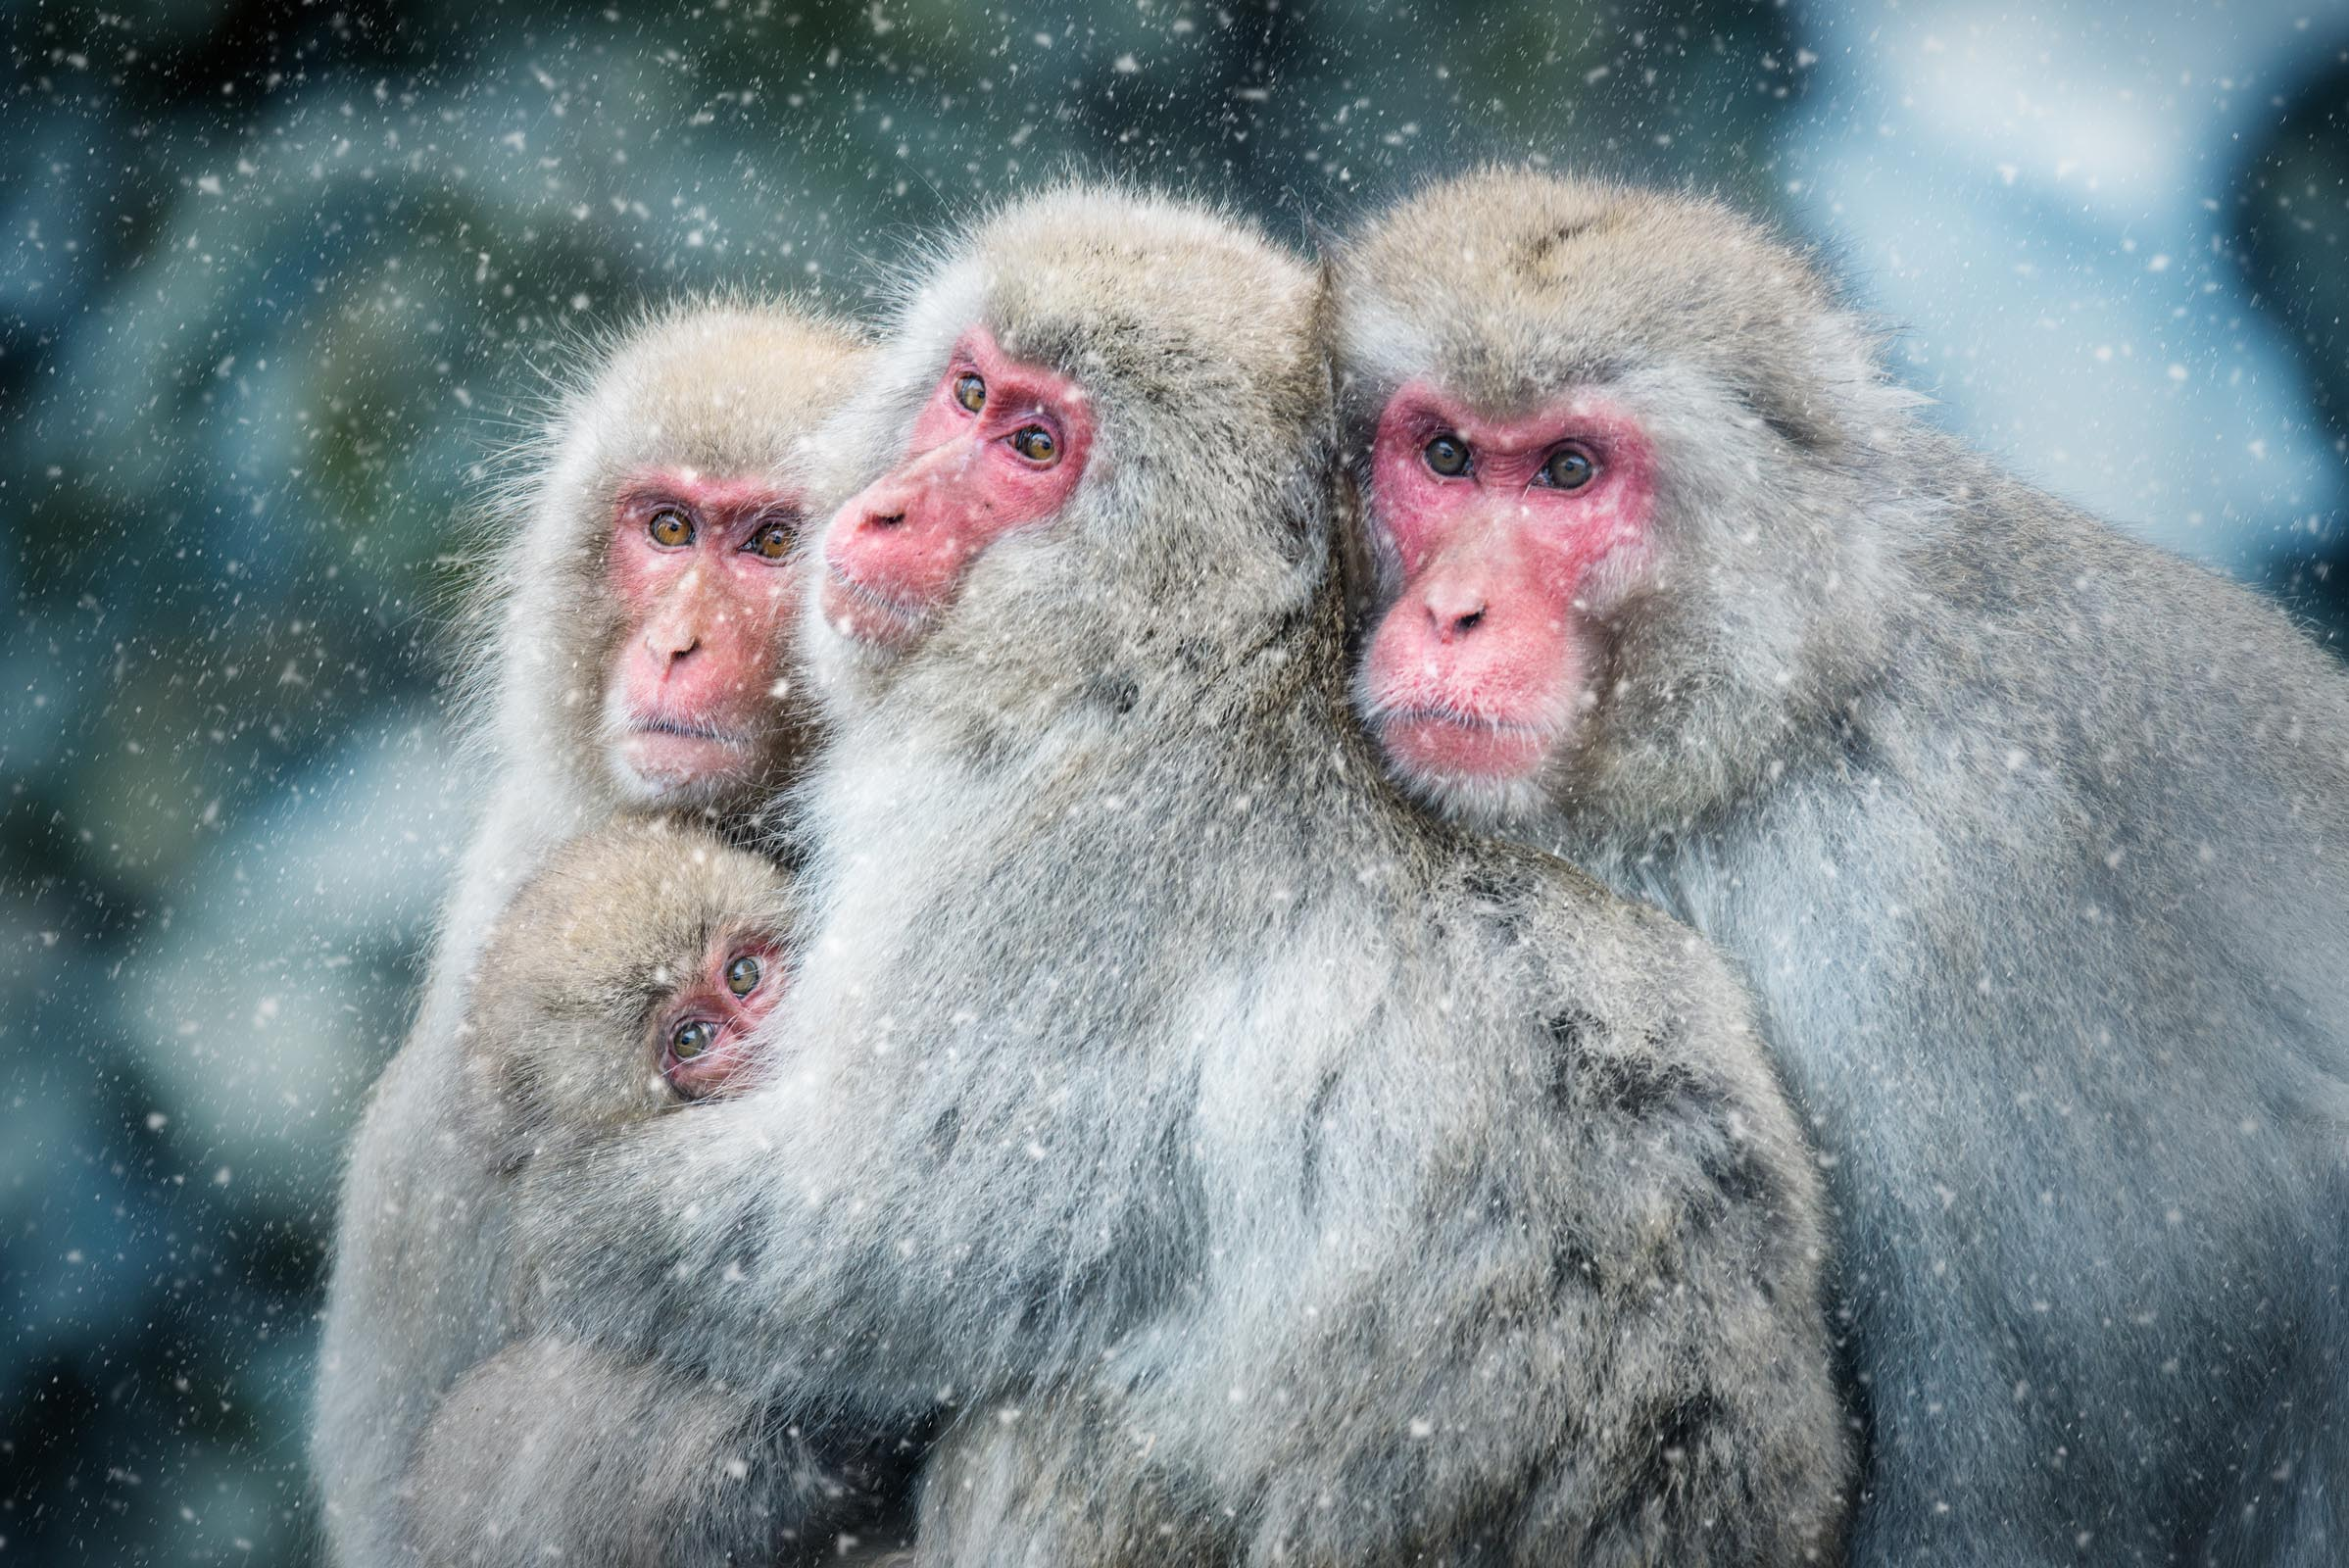 Photograph of Snow Monkeys in Nagano, Japan by Brent Goldman Photography